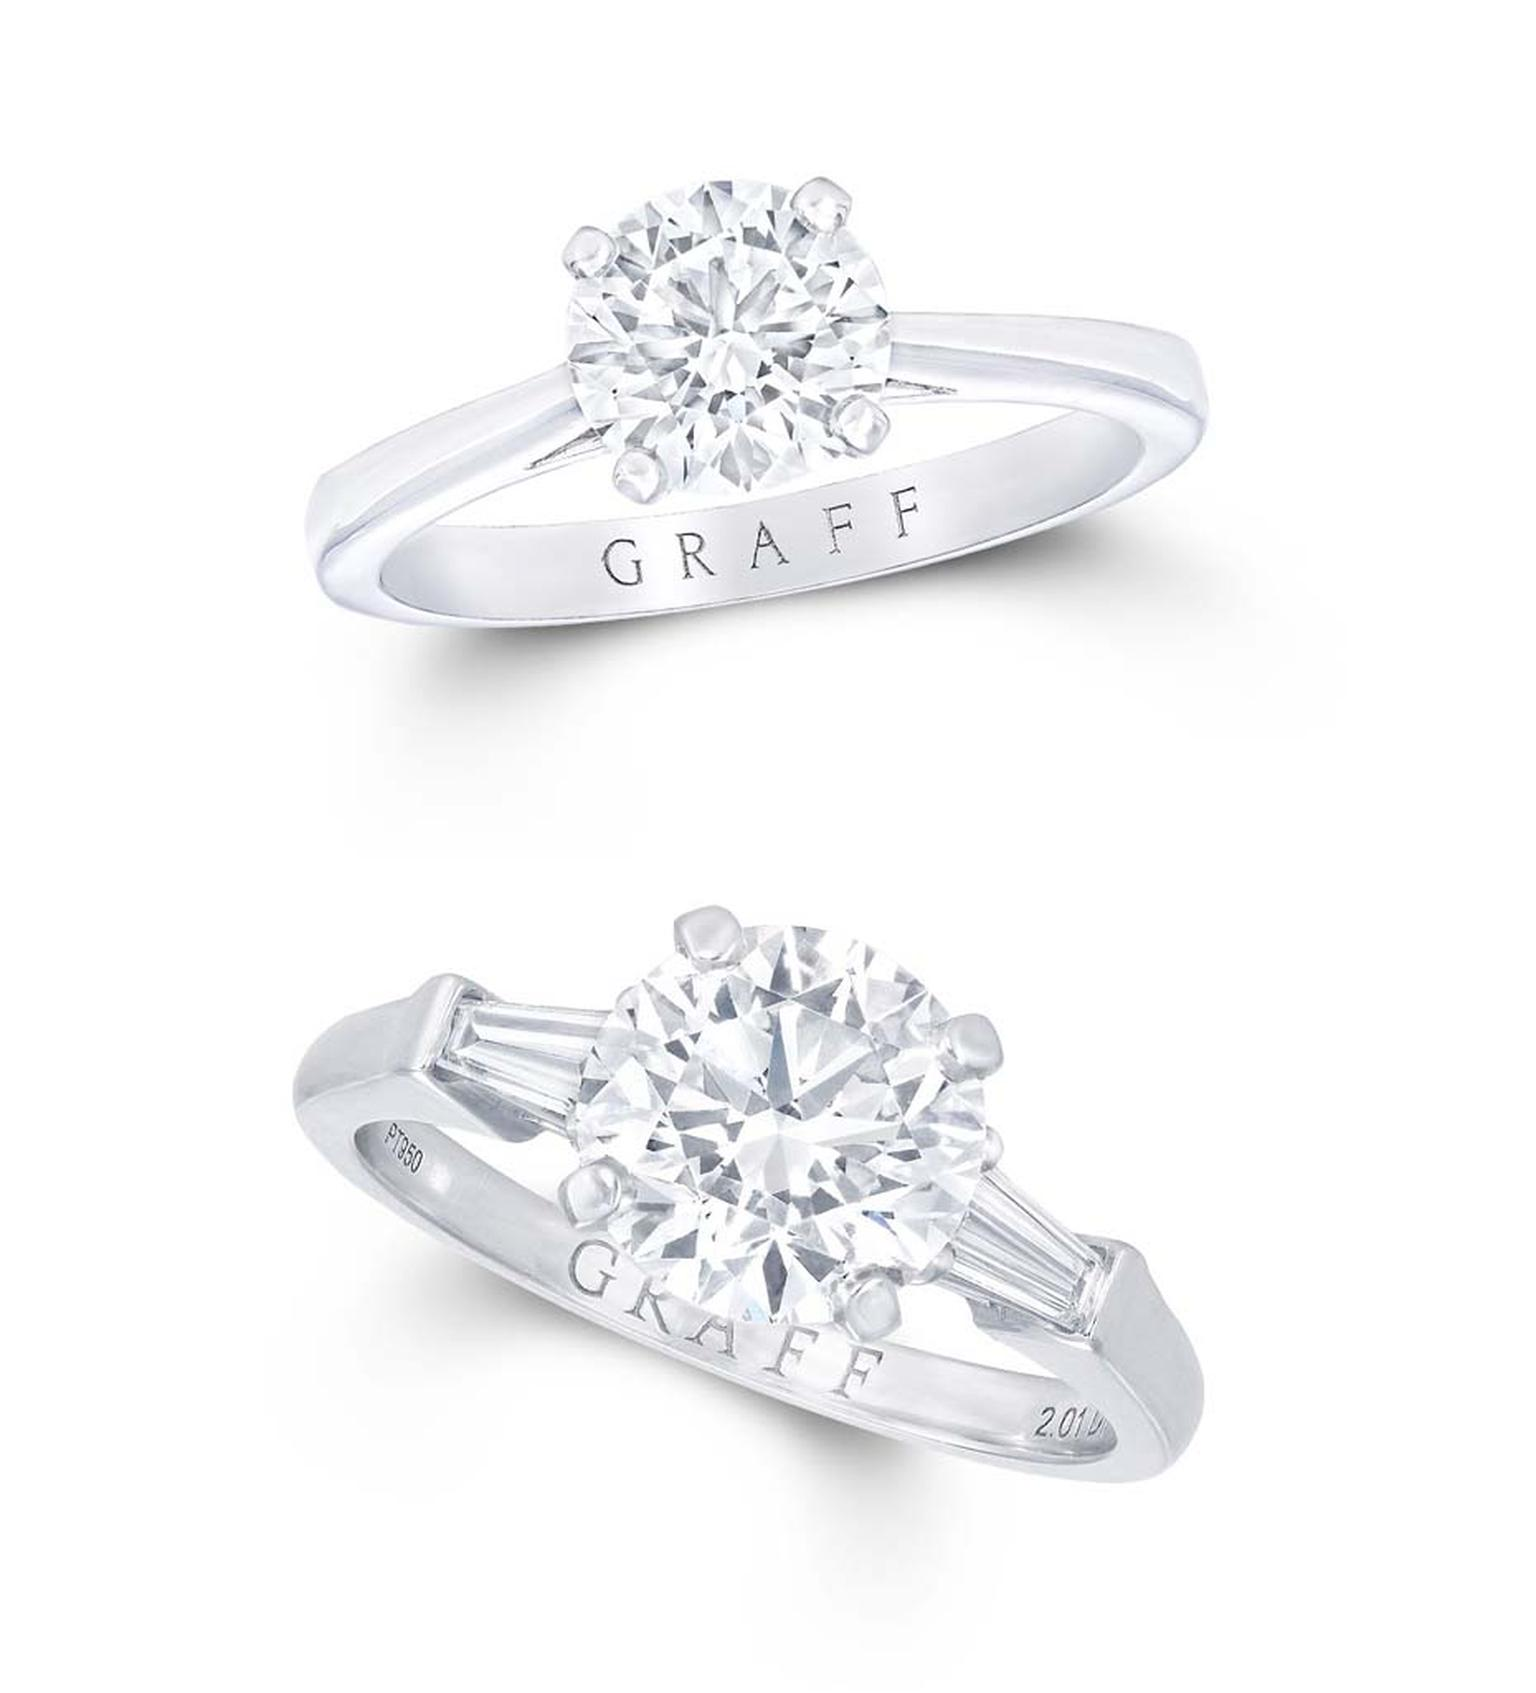 A 2 carat diamond engagement ring dramatically increases the